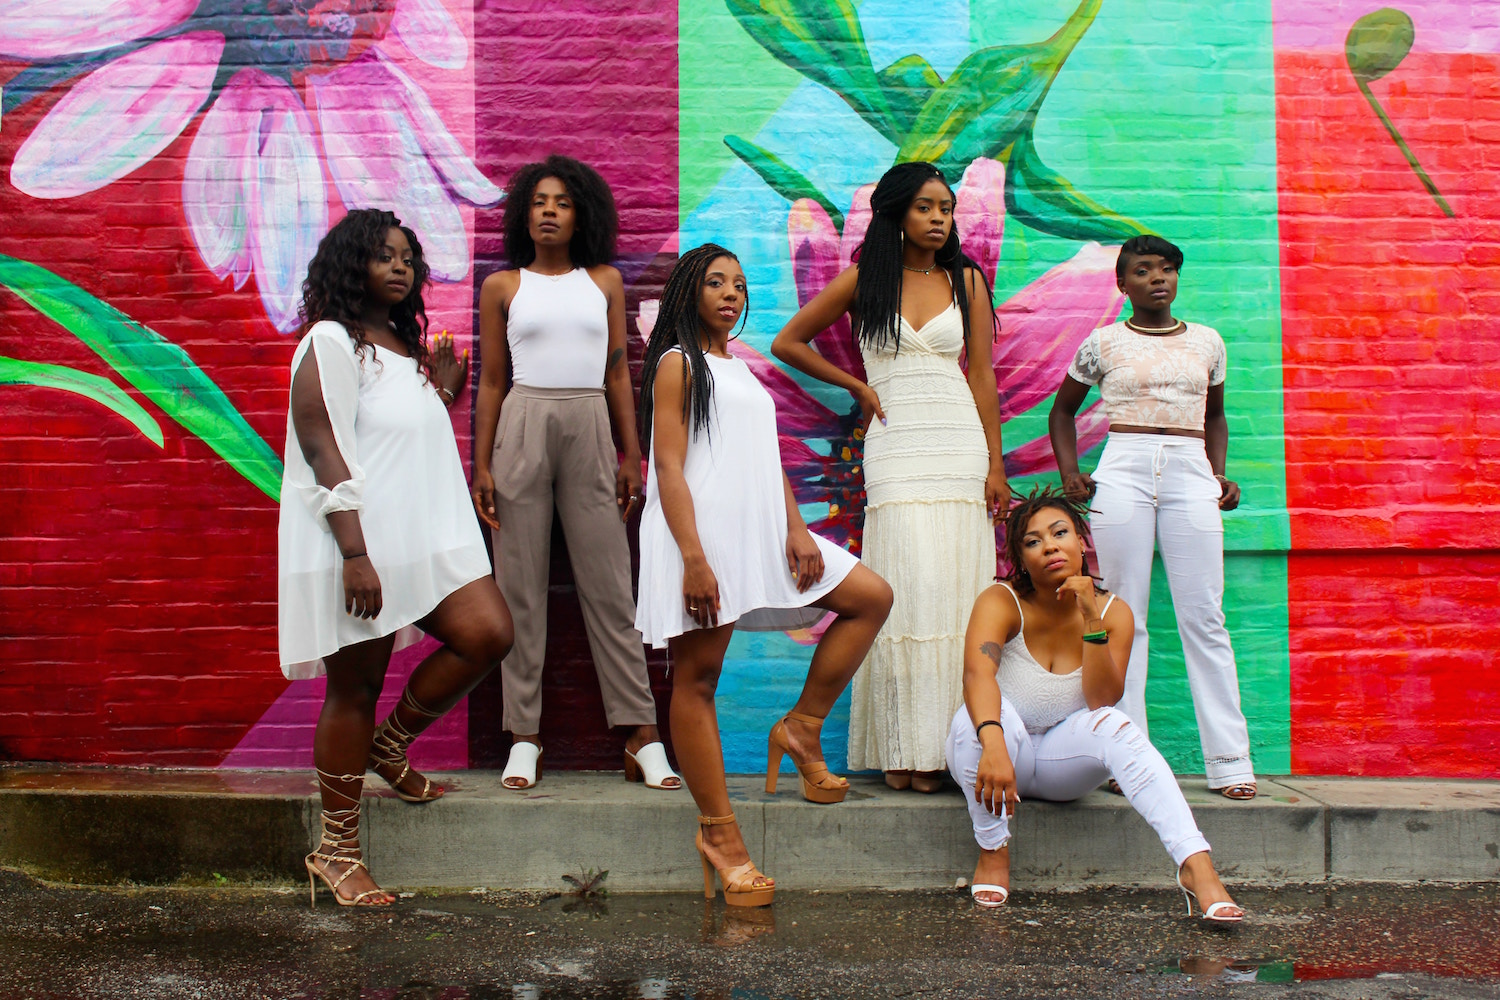 Black women dressed in white in front of a colorful mural